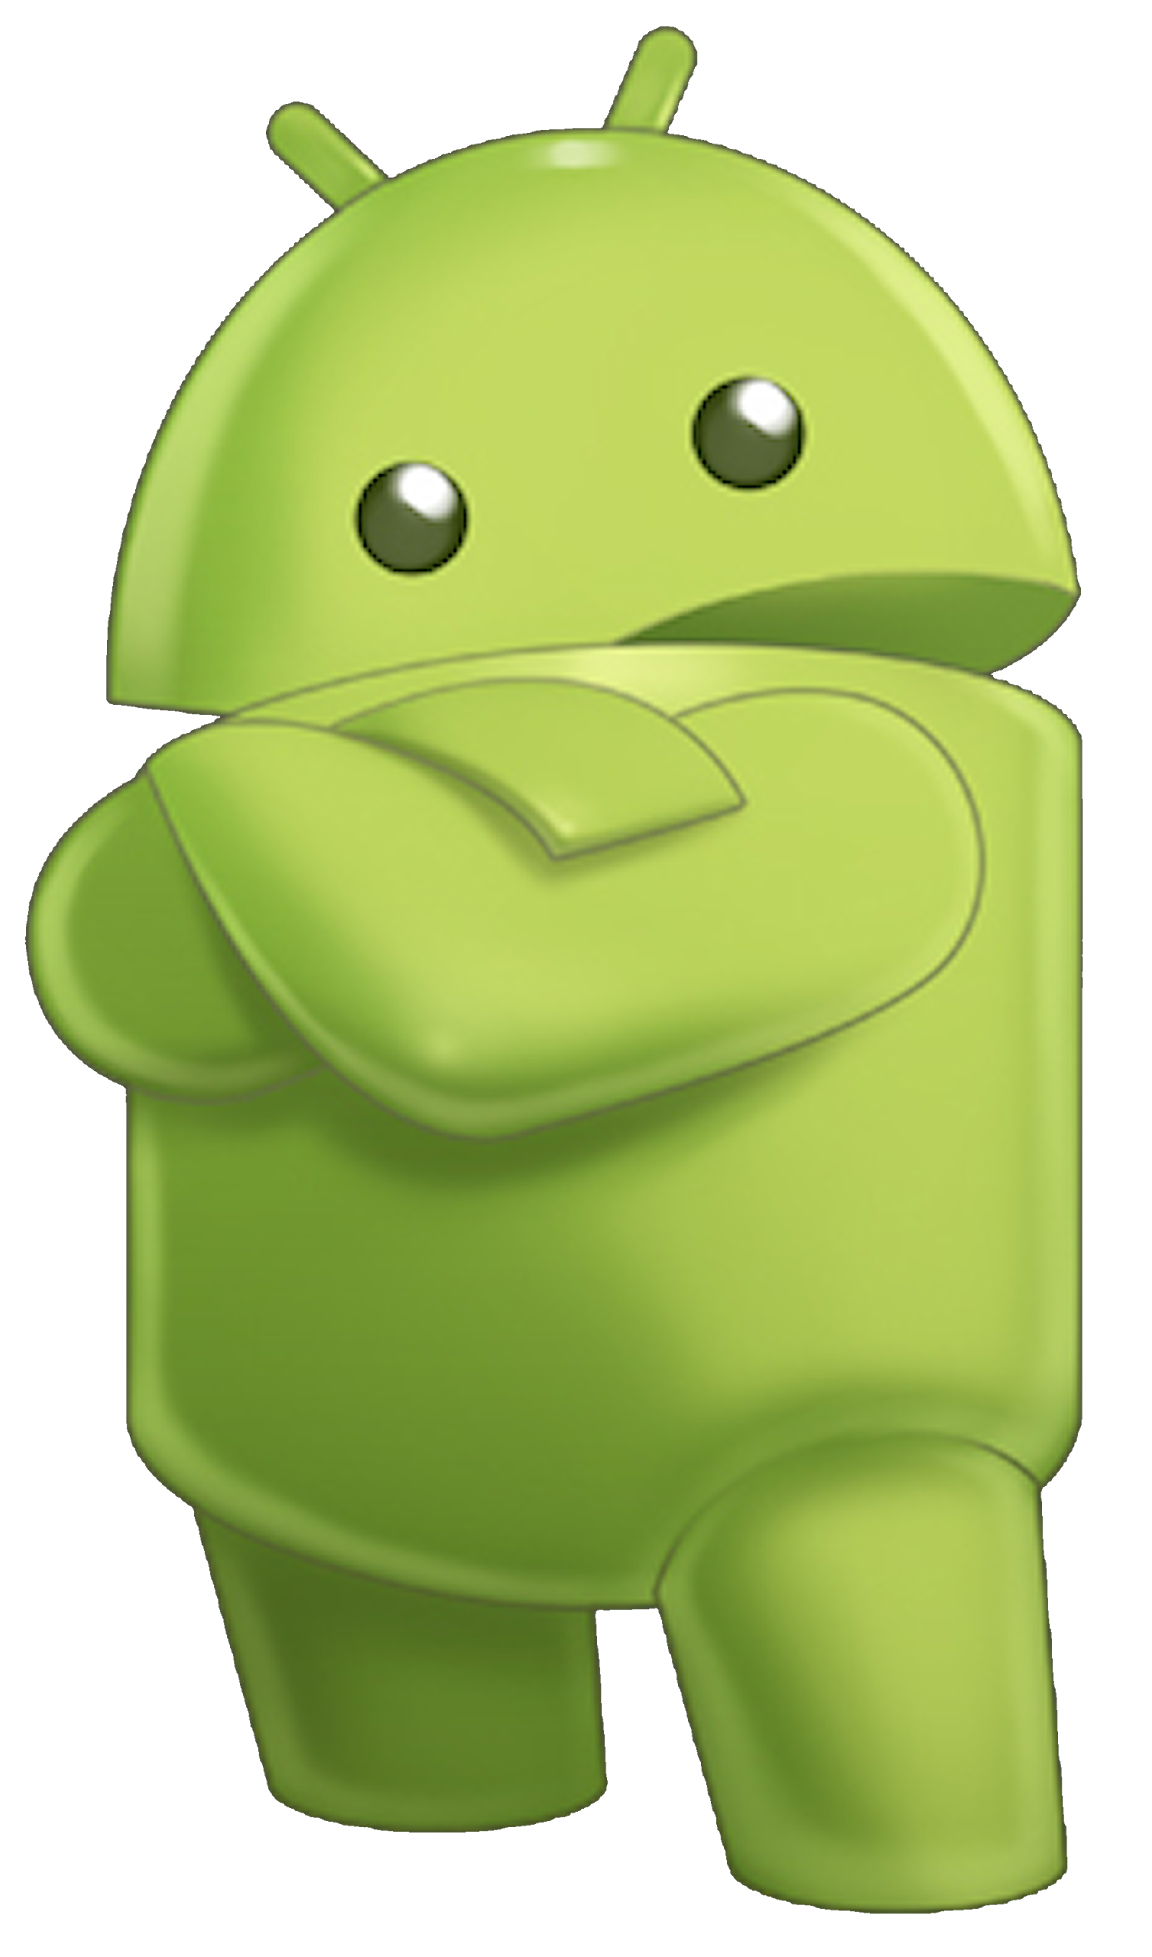 Download Development Android Software Free HD Image HQ PNG Image.